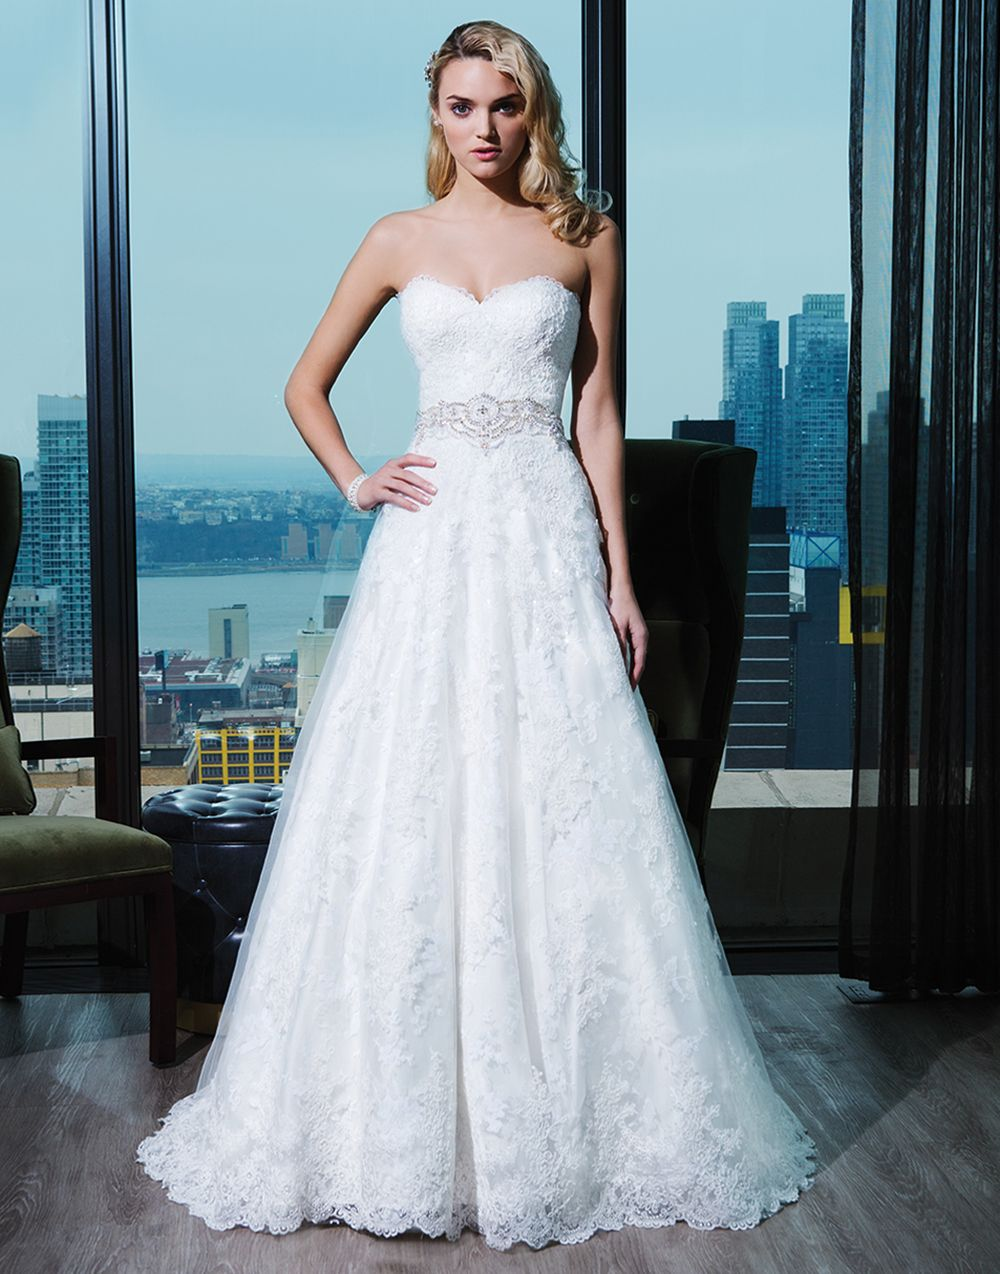 Justin Alexander wedding dresses style 8656 | Lace ball gowns, Ball ...